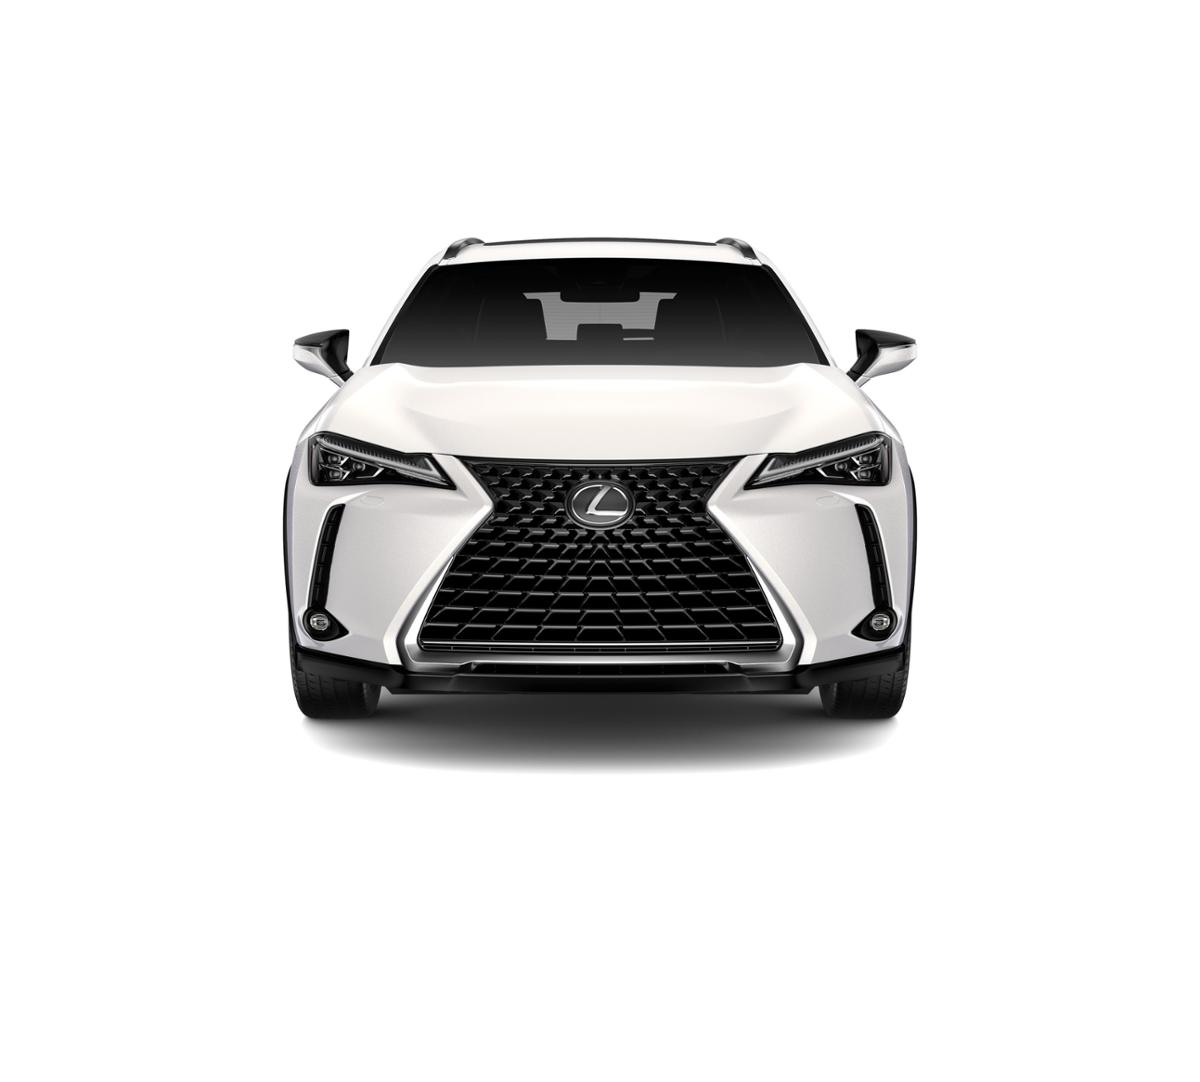 2019 Lexus UX 200 Vehicle Photo in Santa Monica, CA 90404